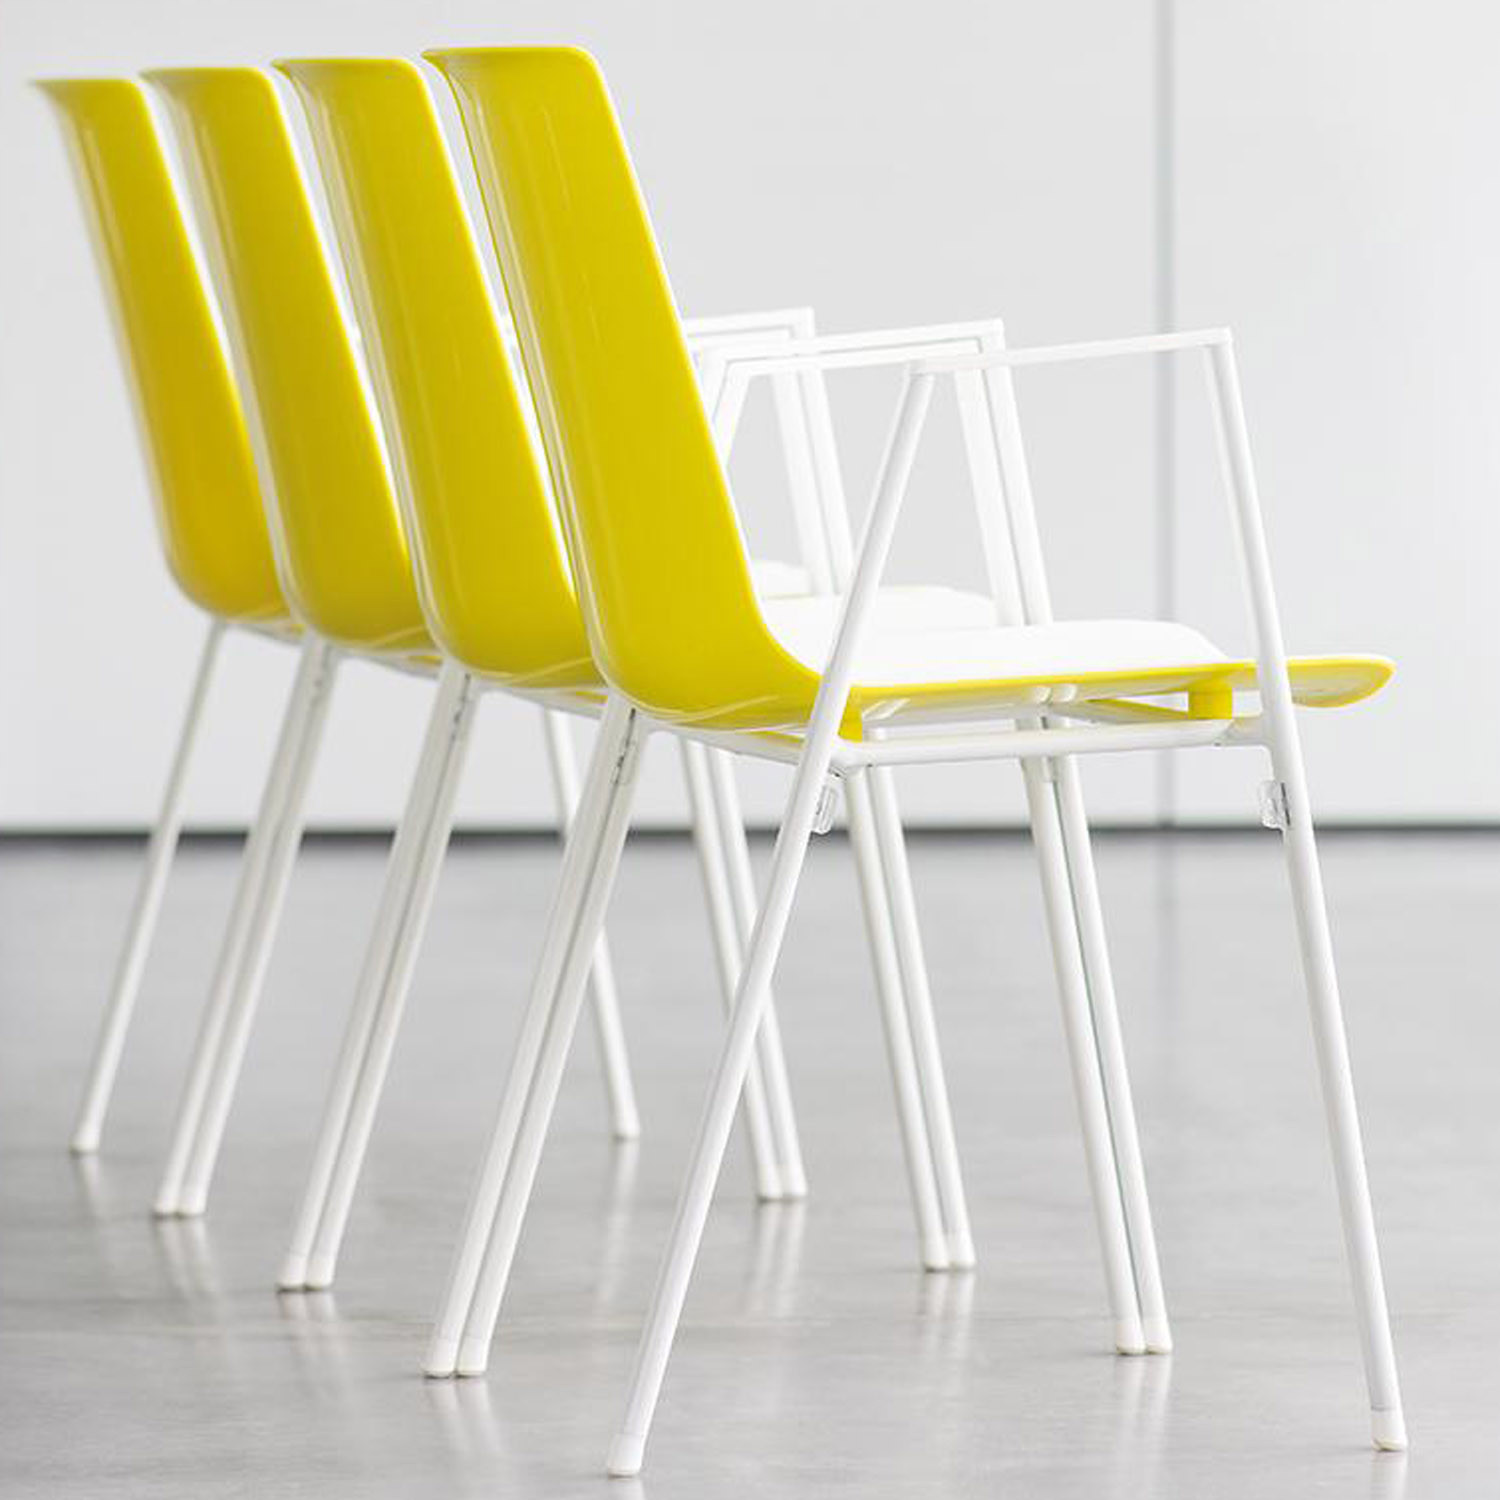 Nooi Chairs Linked Seating Solutions